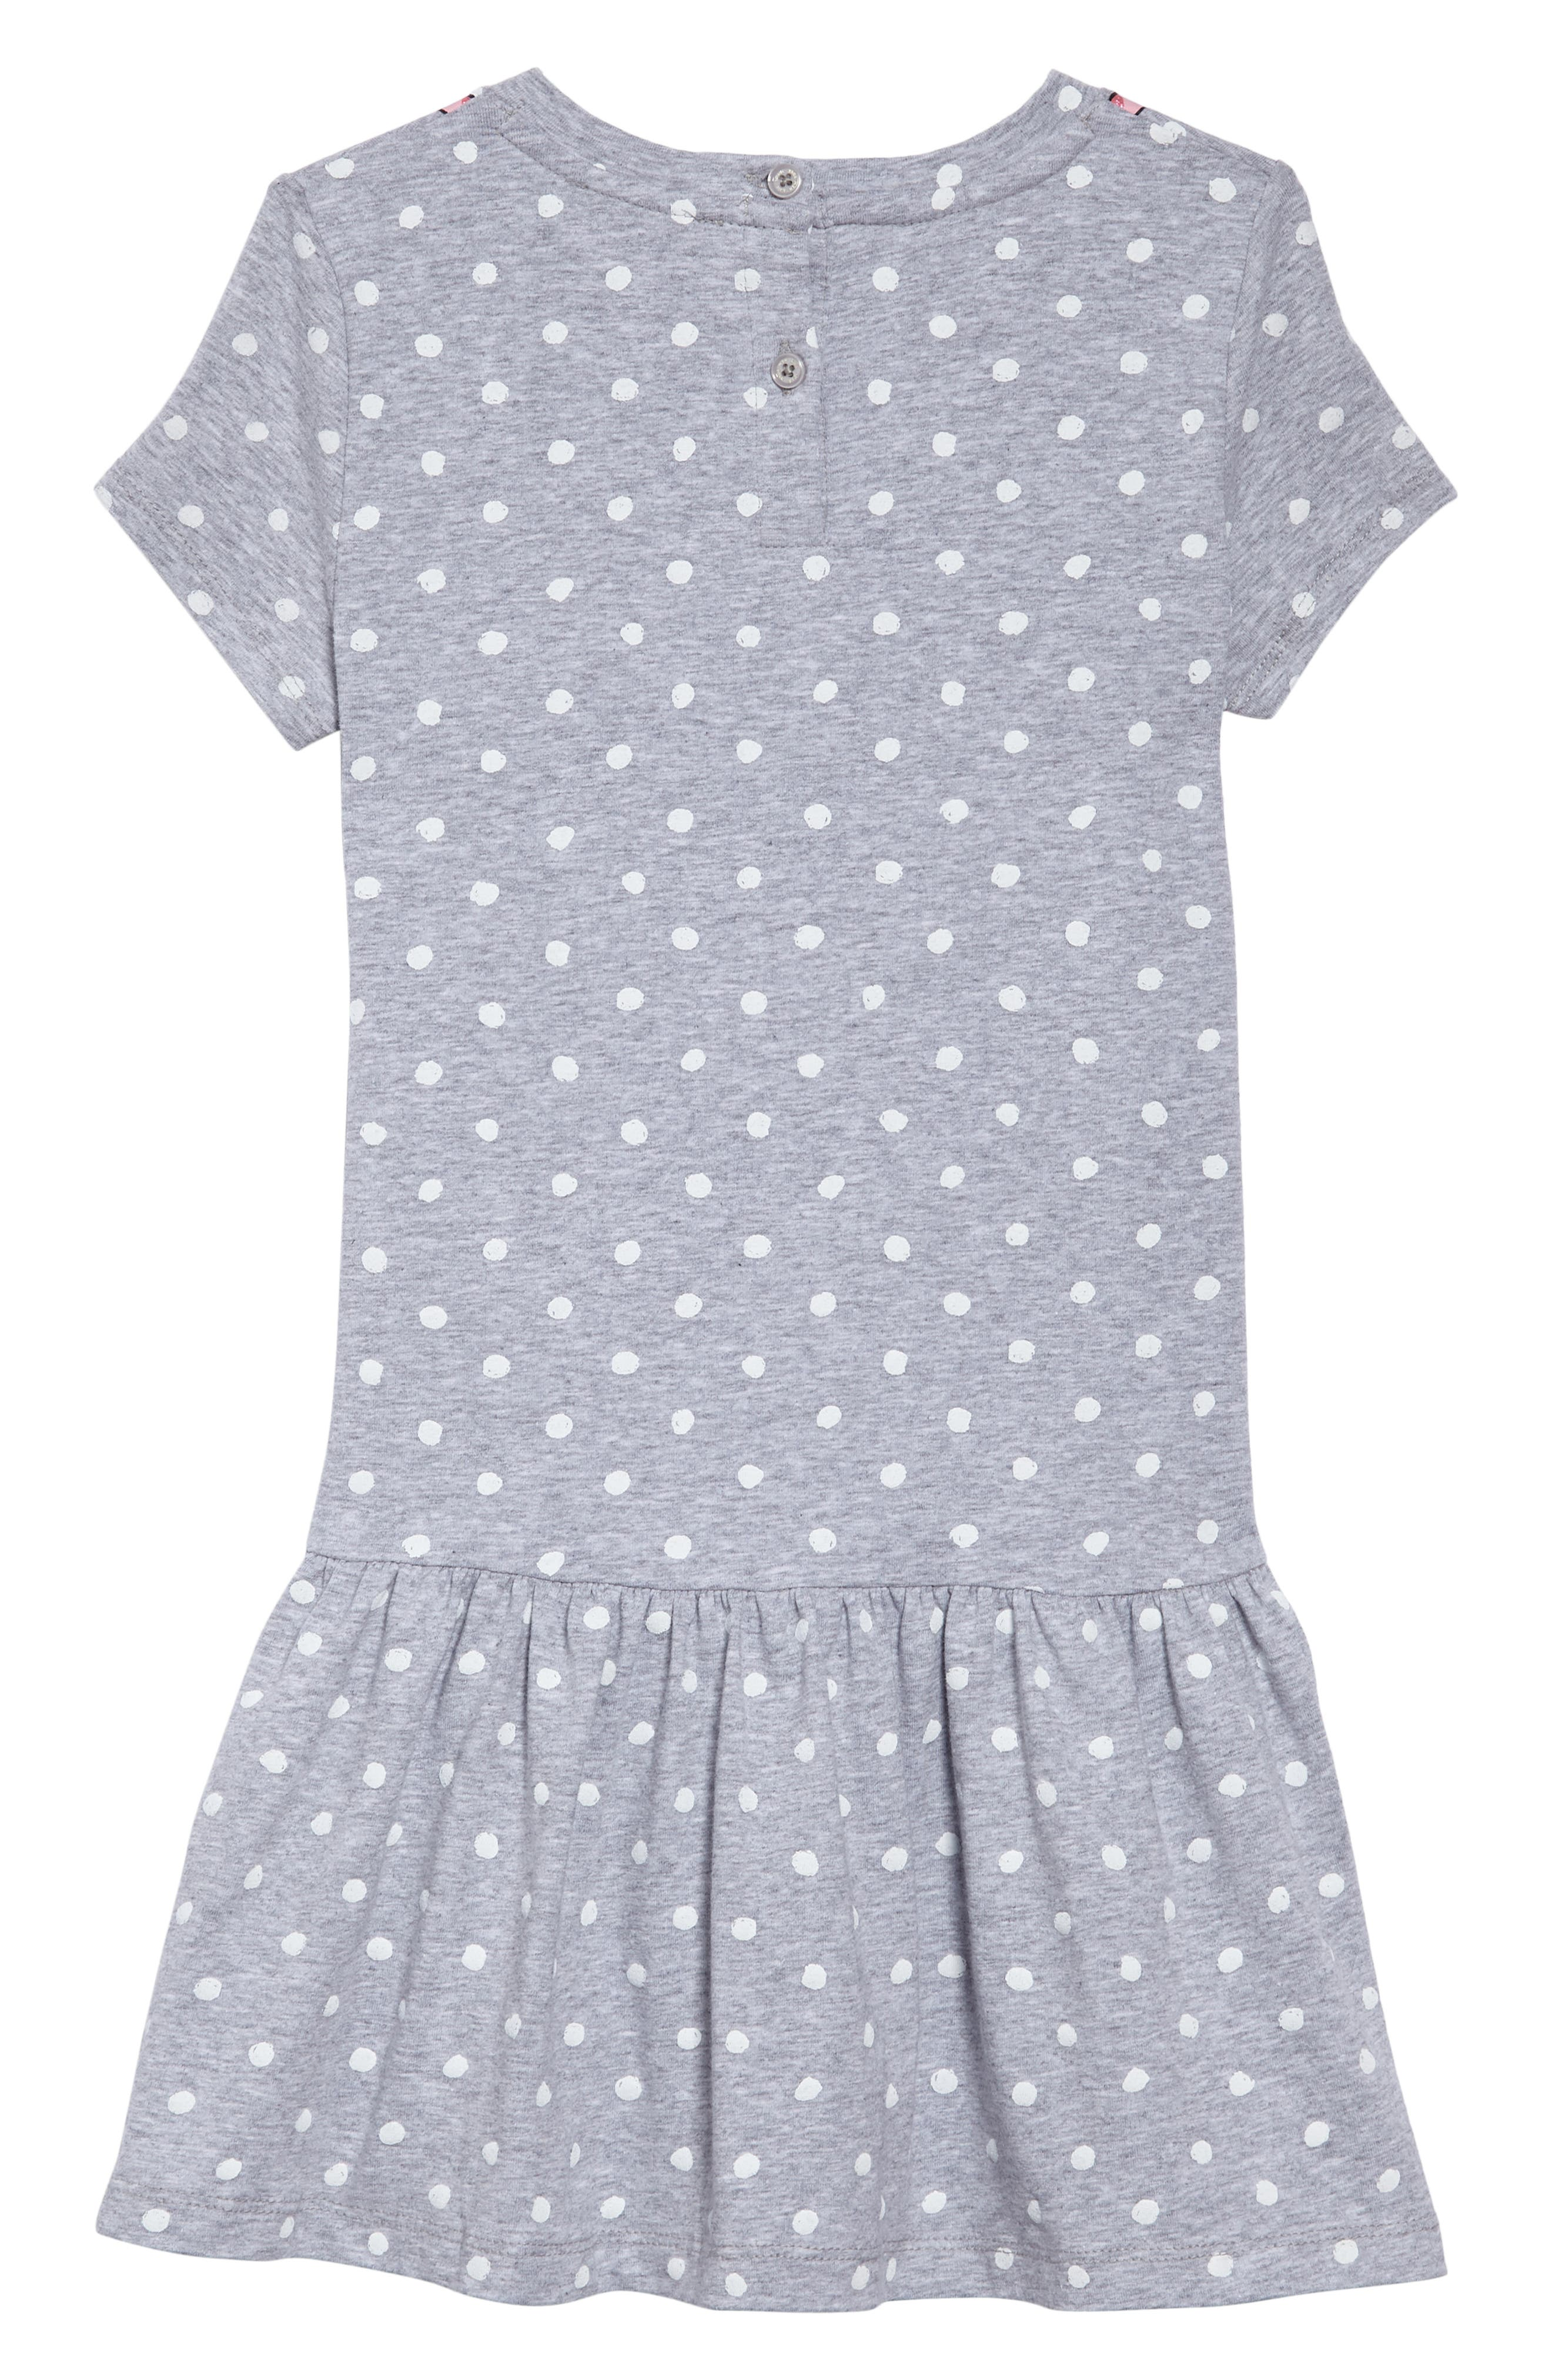 camera polka dot dress,                             Alternate thumbnail 2, color,                             030